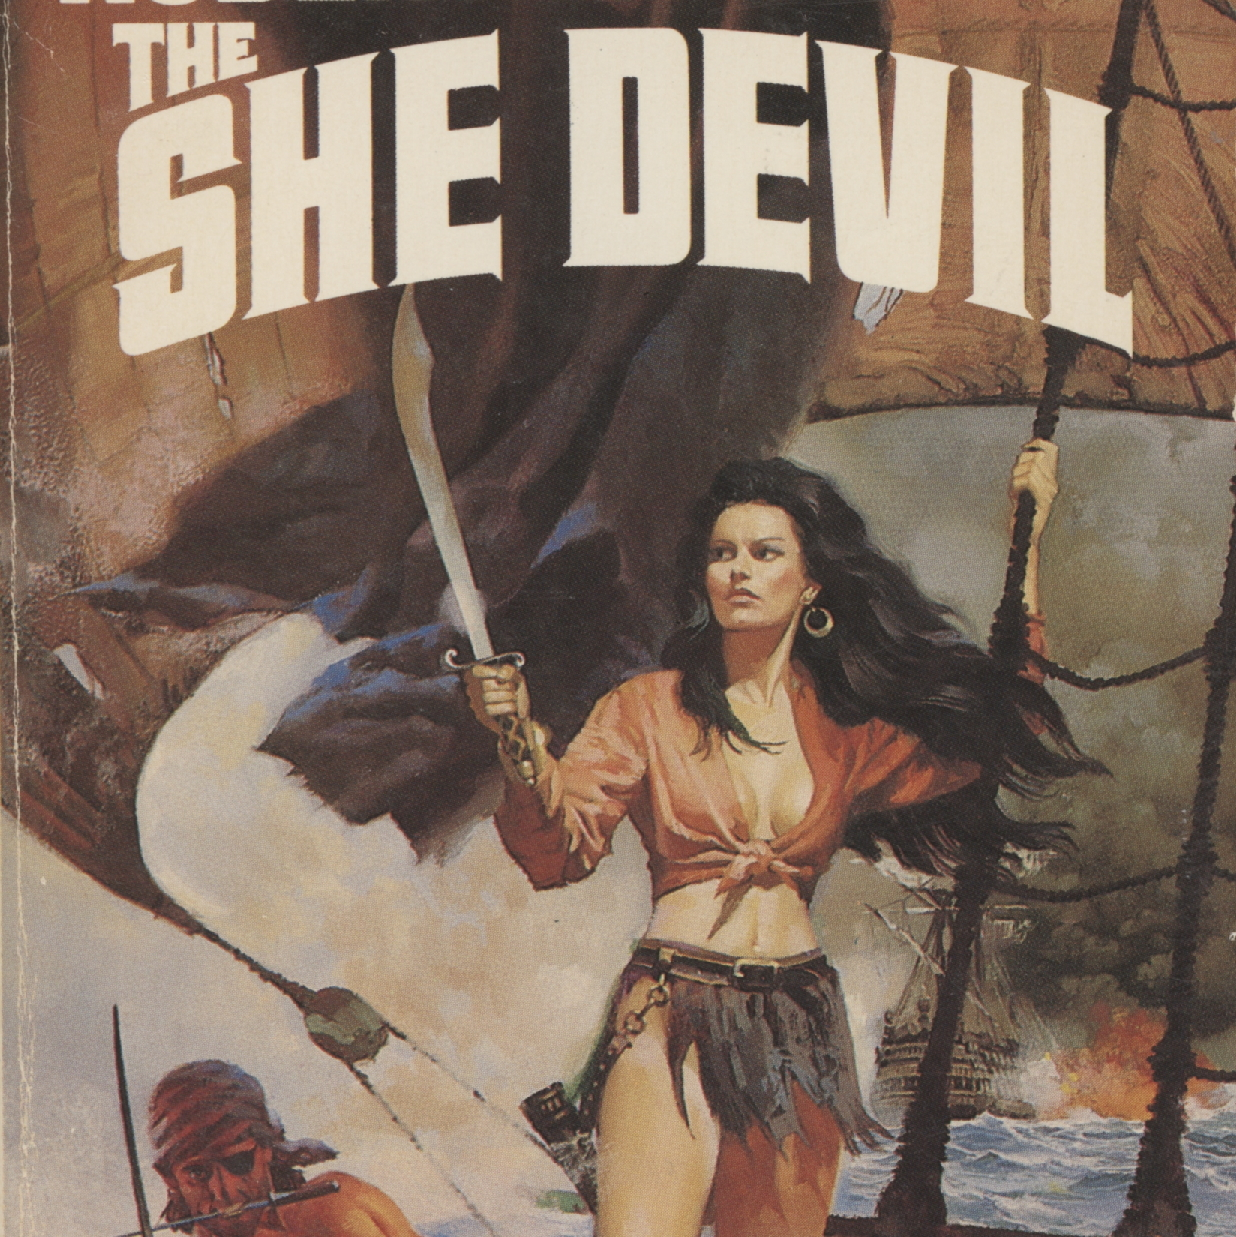 Pirate Pulp Fiction Paperback Cover Art!